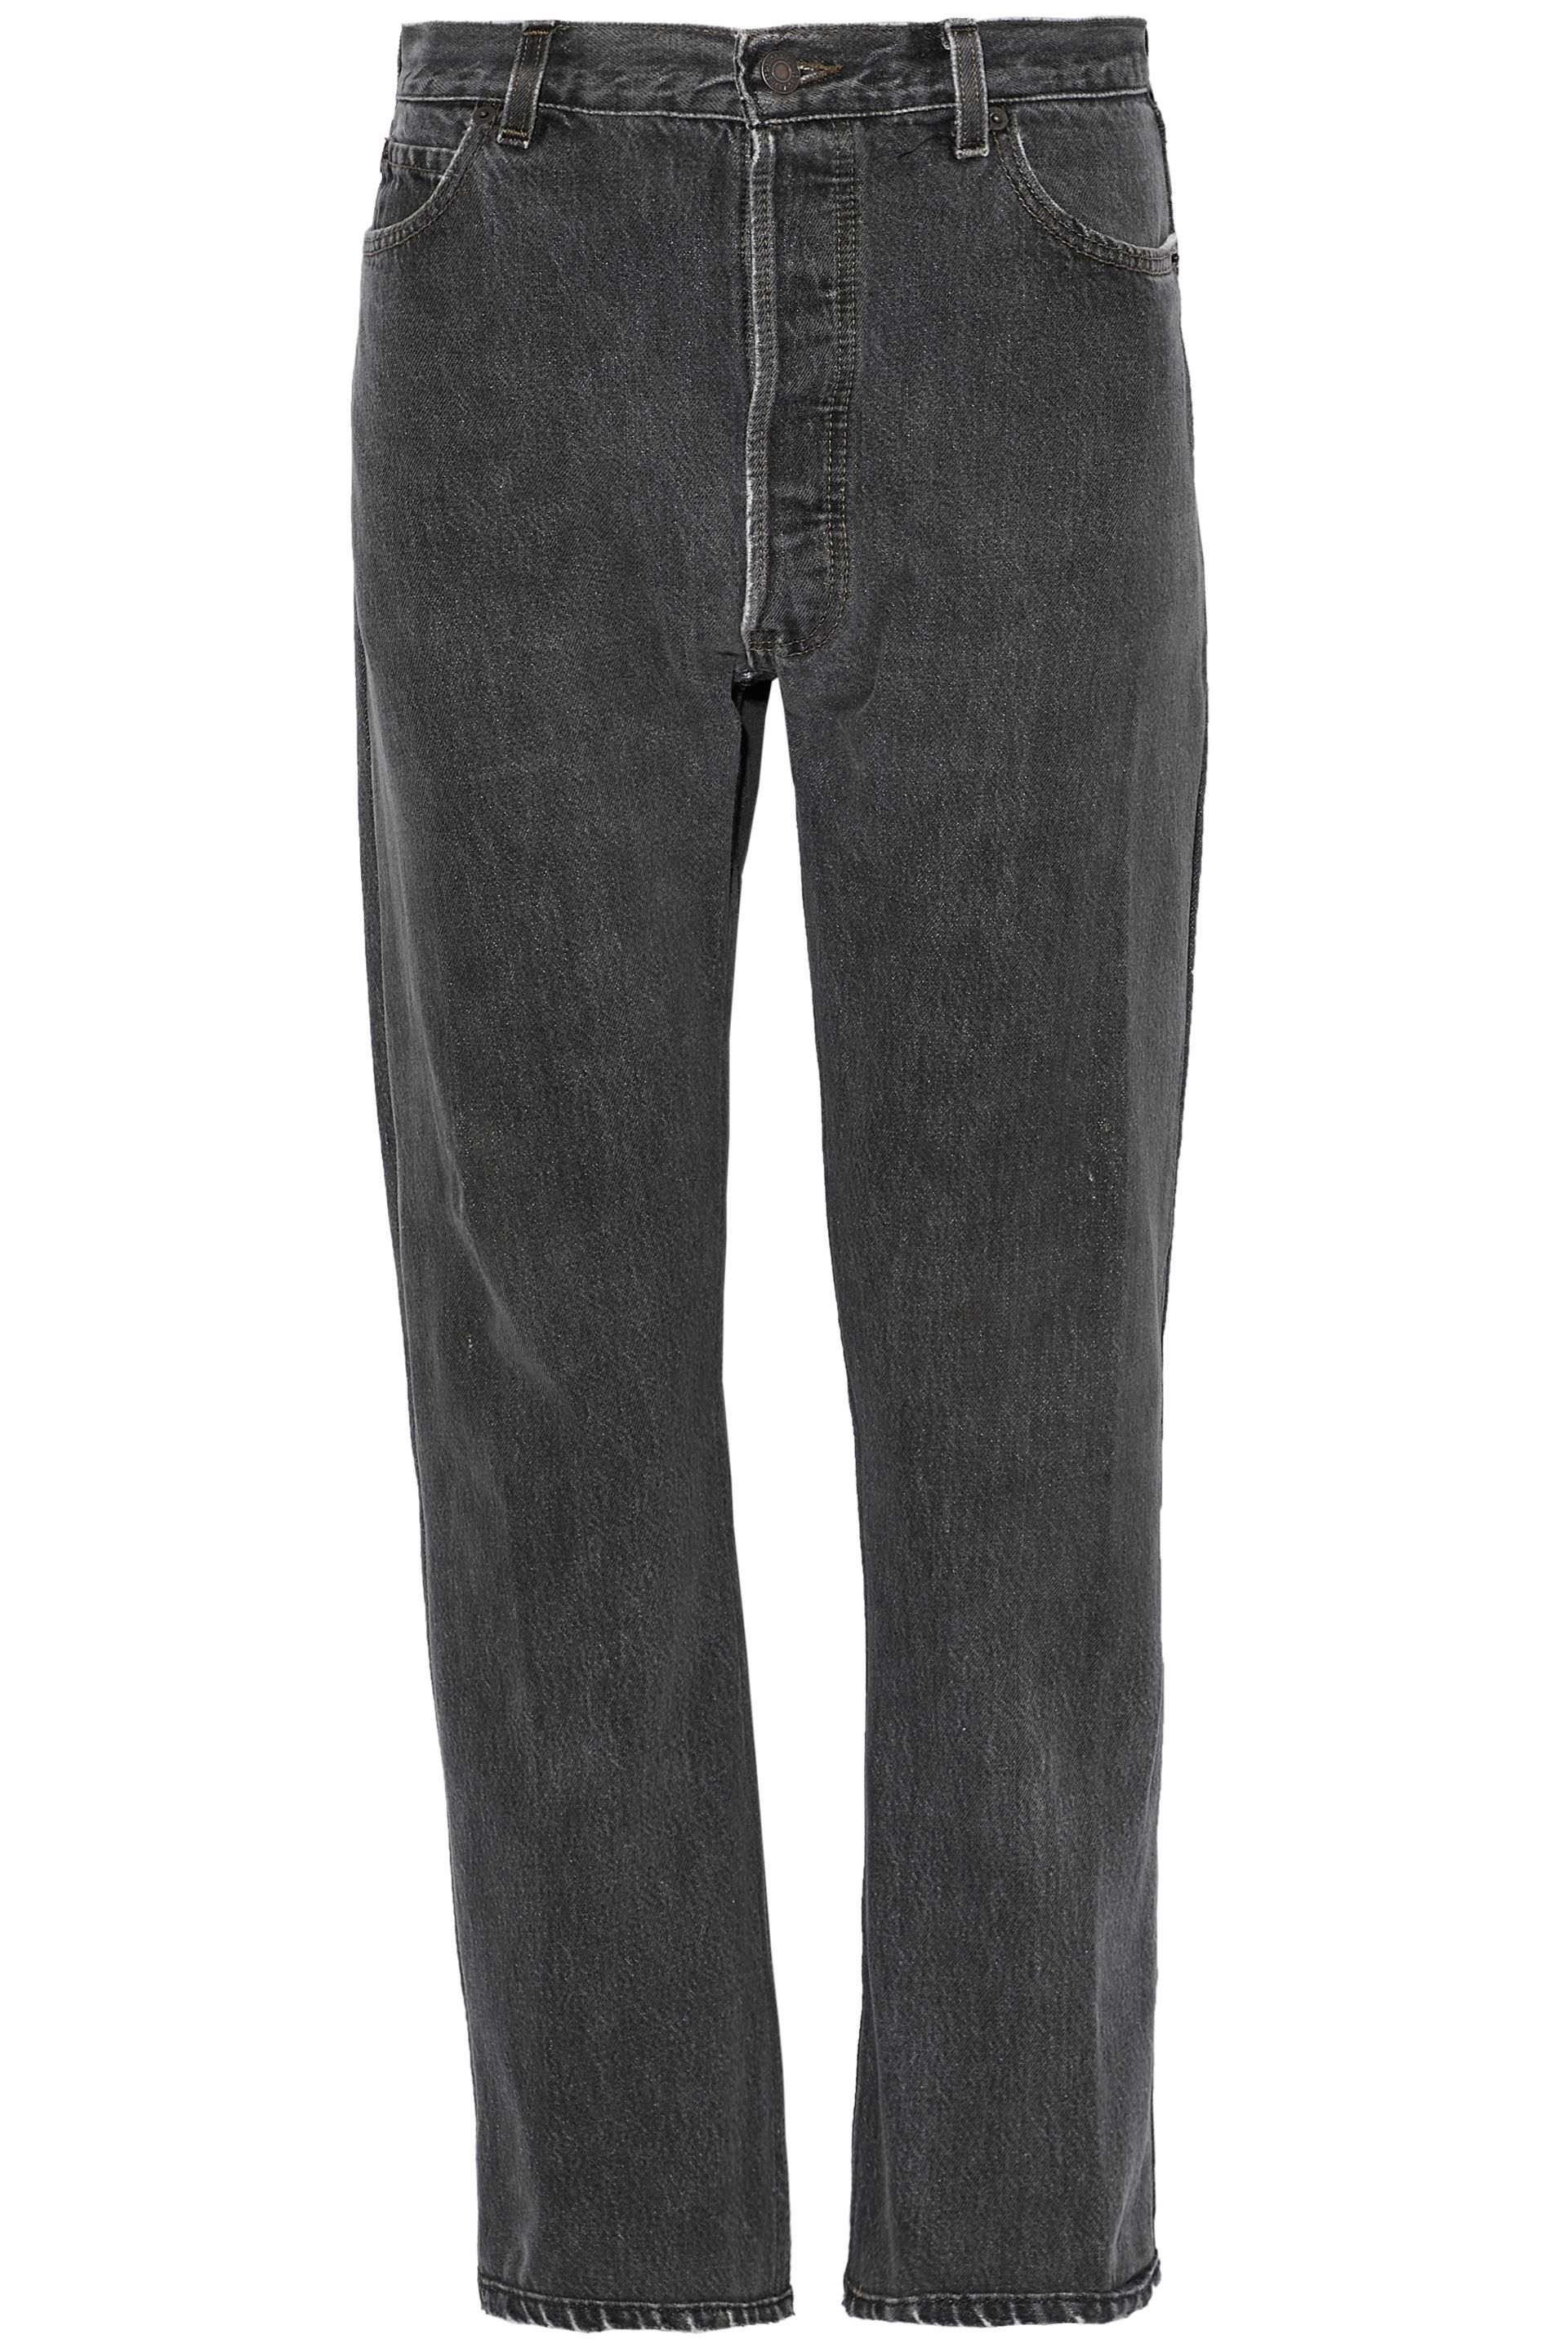 RE/DONE by Levi's High-waisted Straight-Leg Jeans